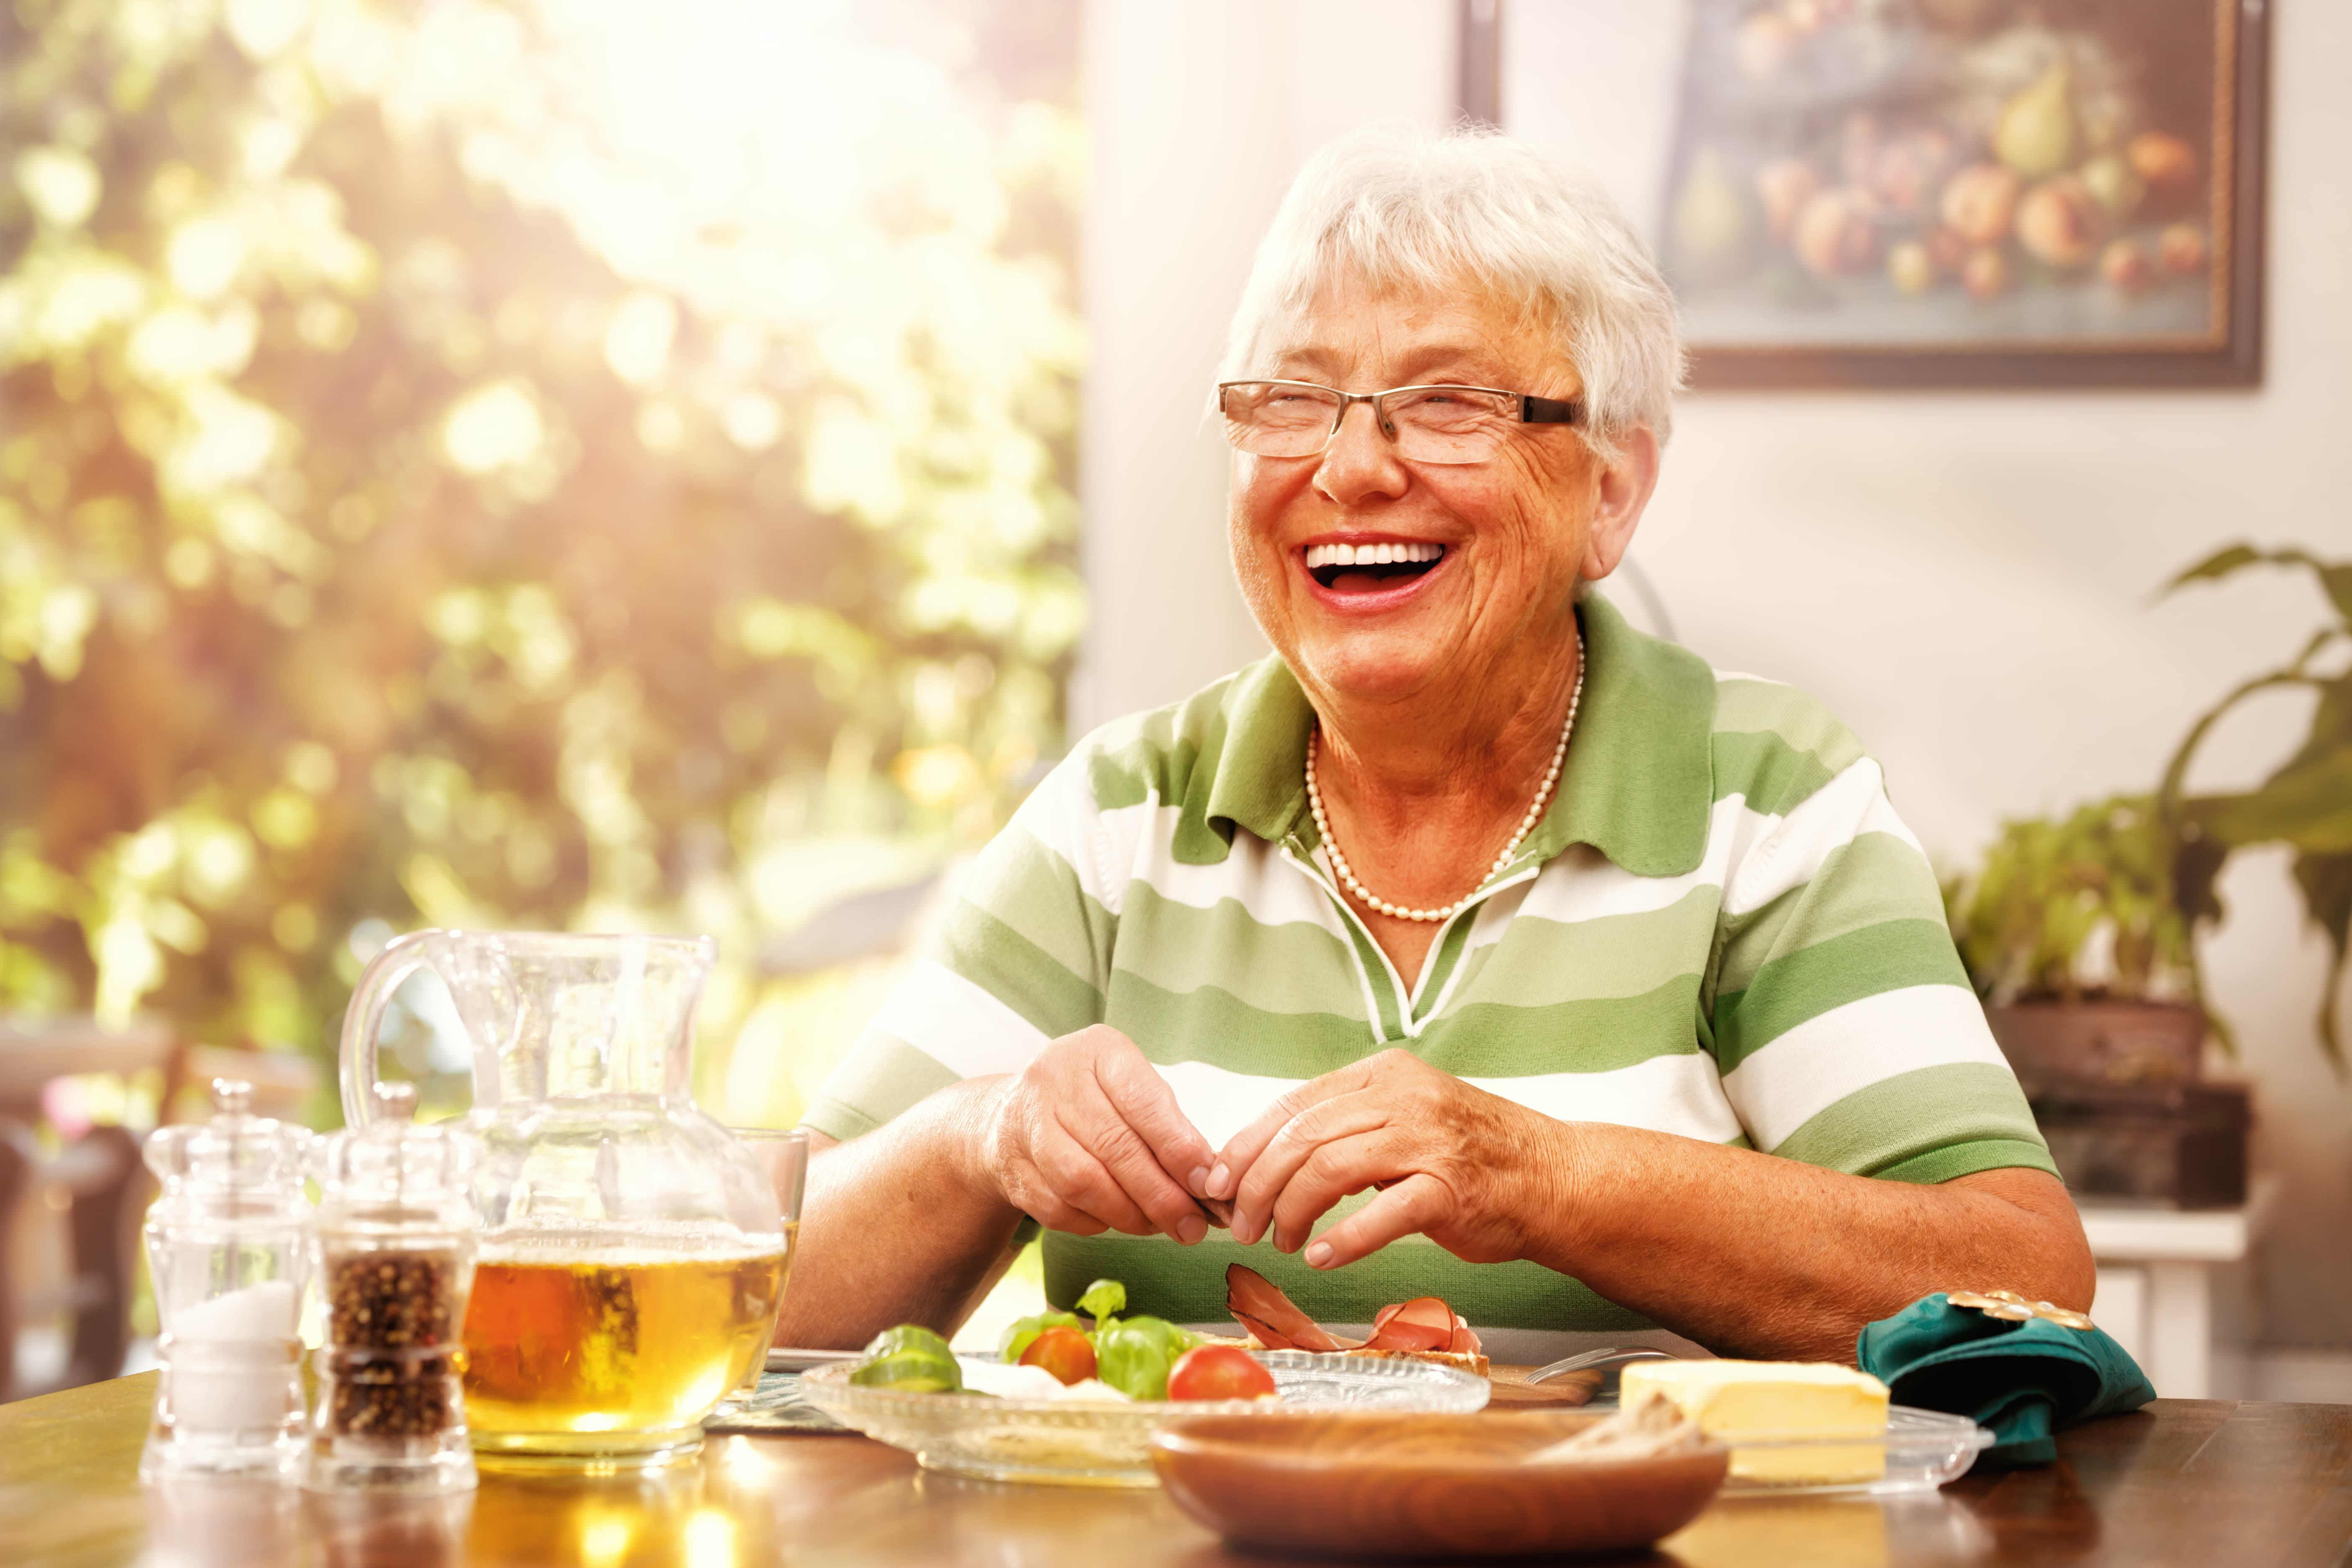 How a Caregiver Can Help in Meal Planning